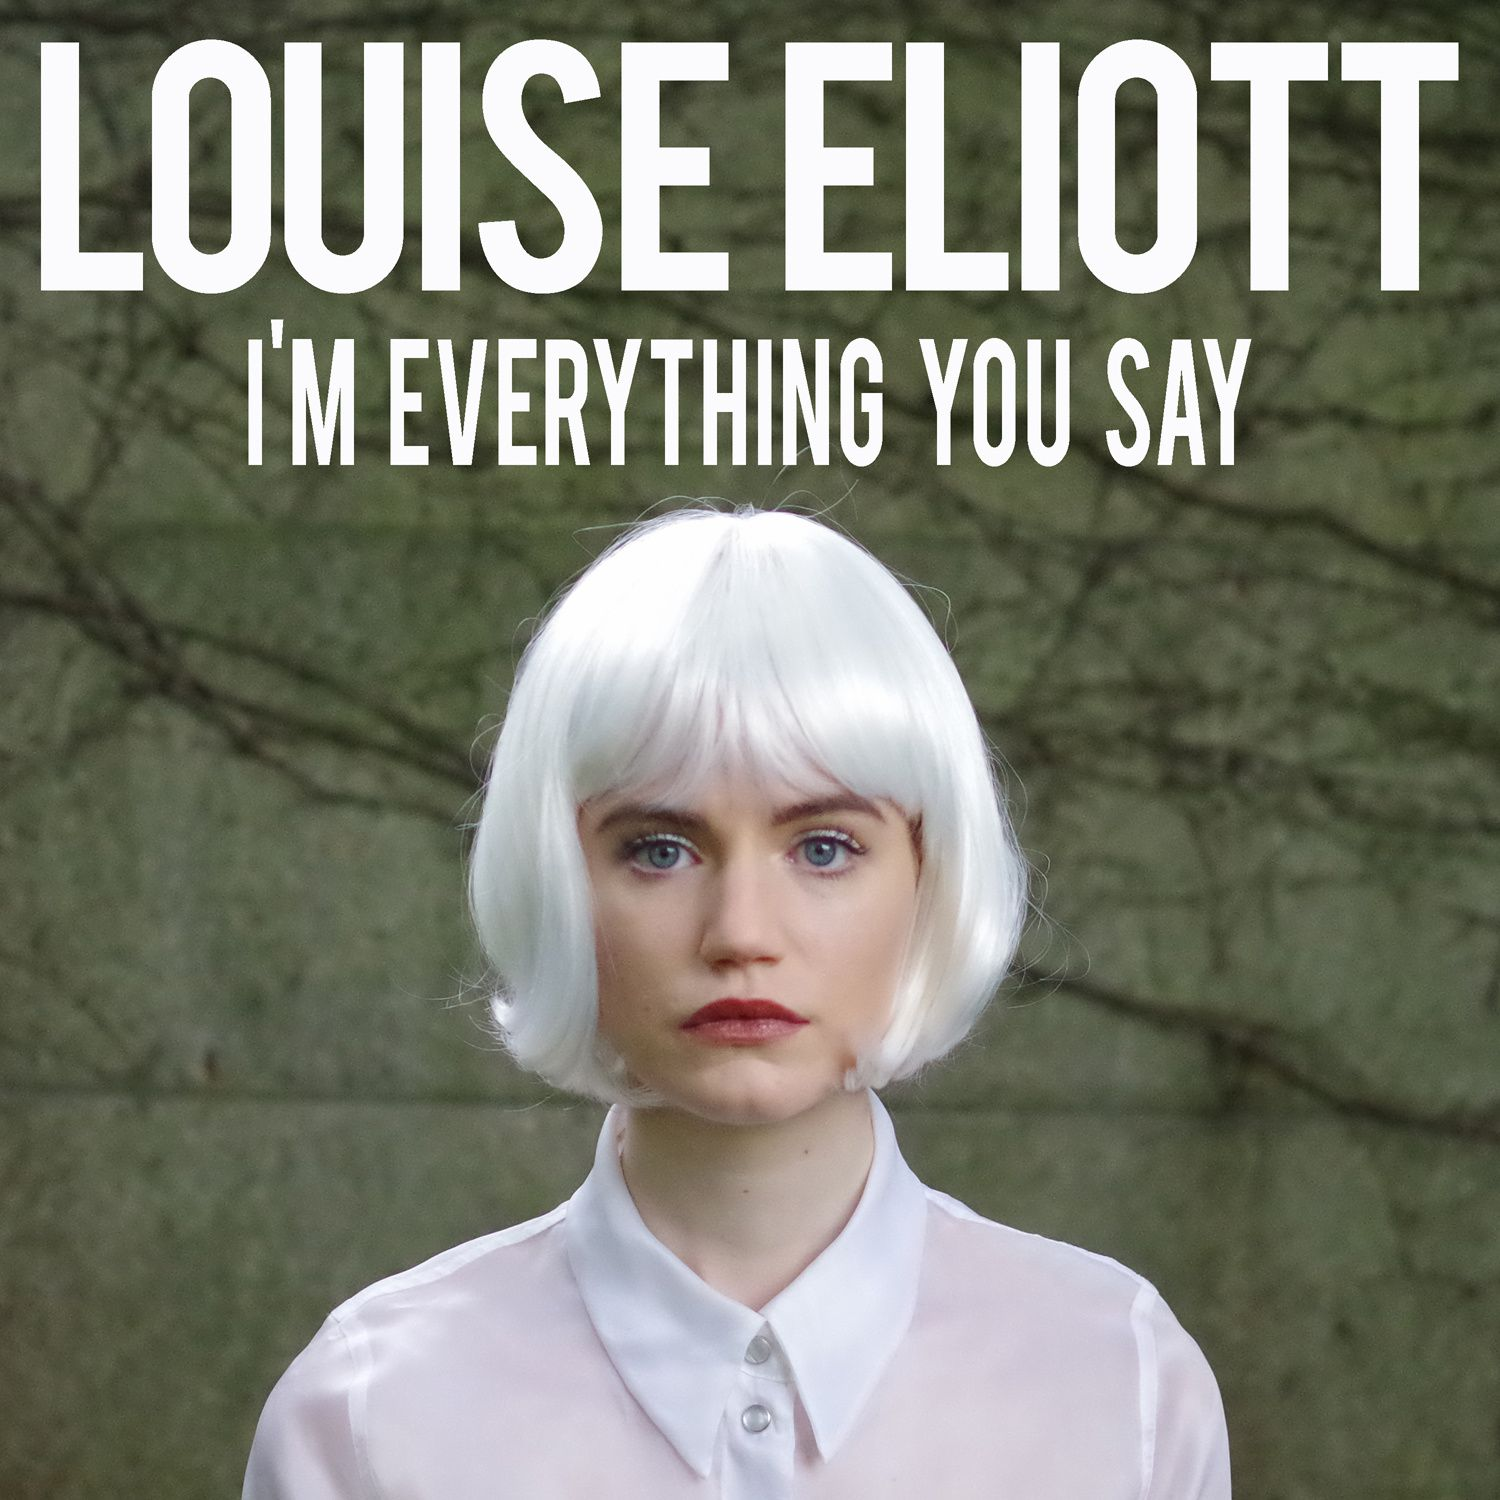 louise eliott, i'm everything you say, clip, pop, radio, all the things